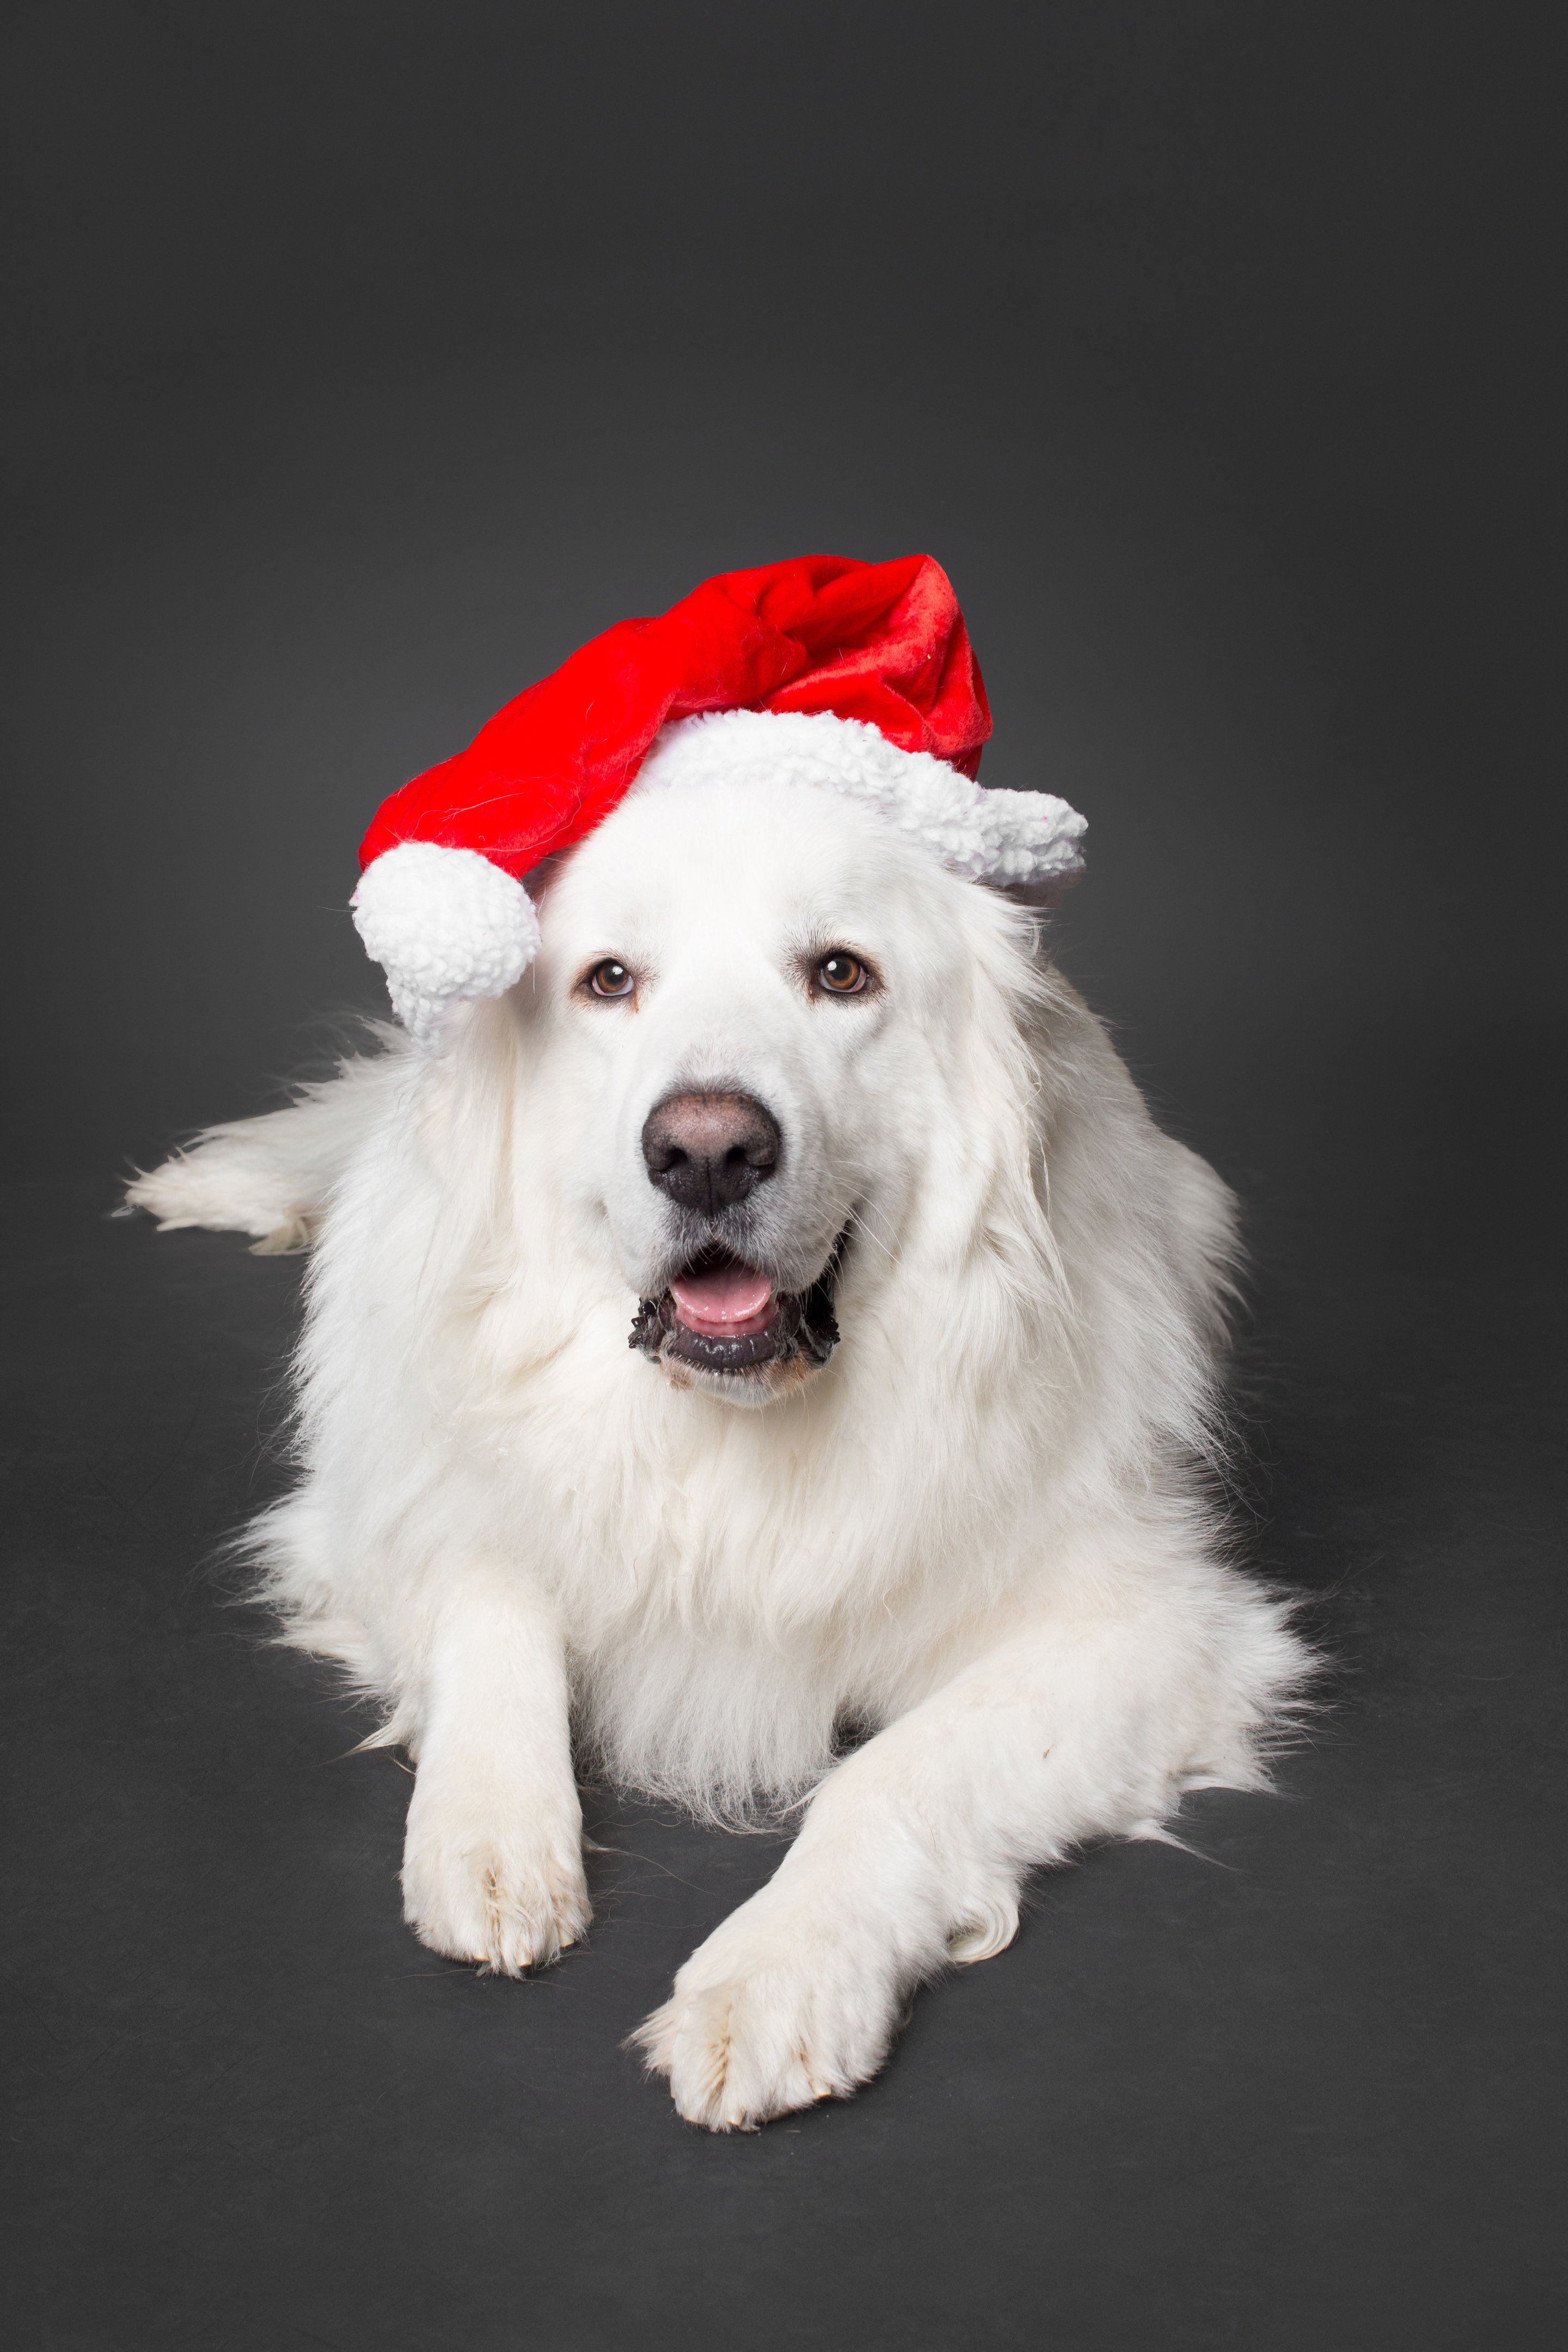 Atka the Great Pyrenees modeling for his Christmas photo